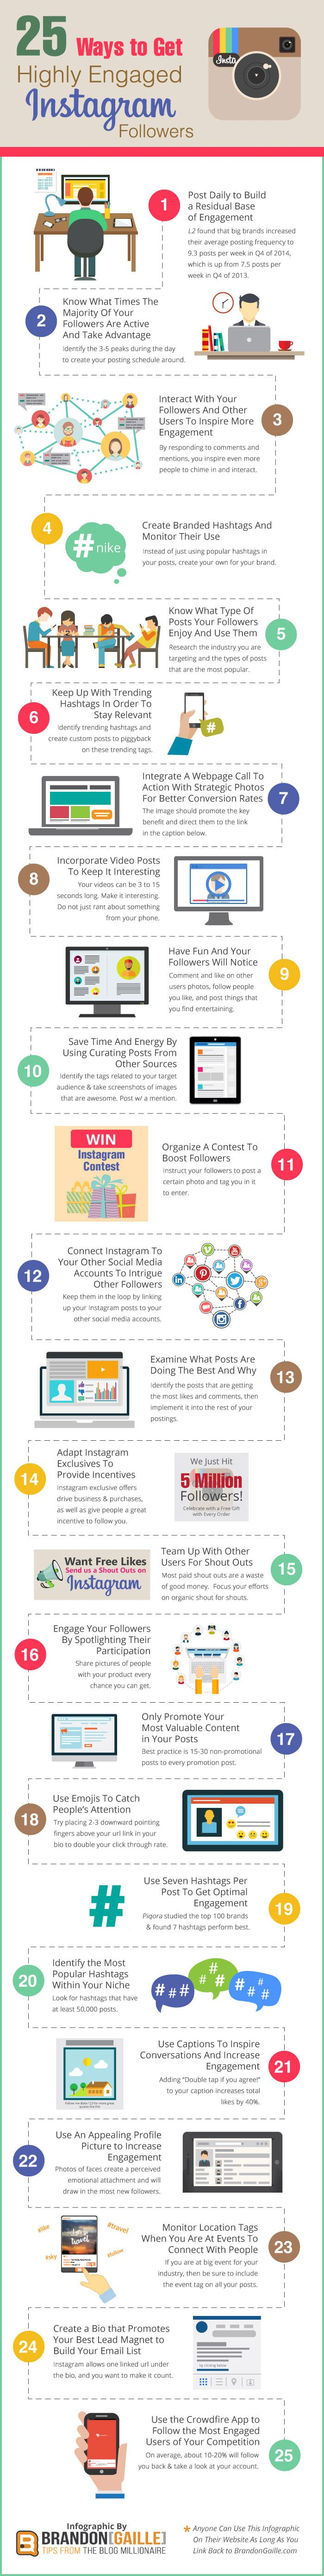 25 Ways To Get Highly Engaged Instagram Followers [Inforgraphic]